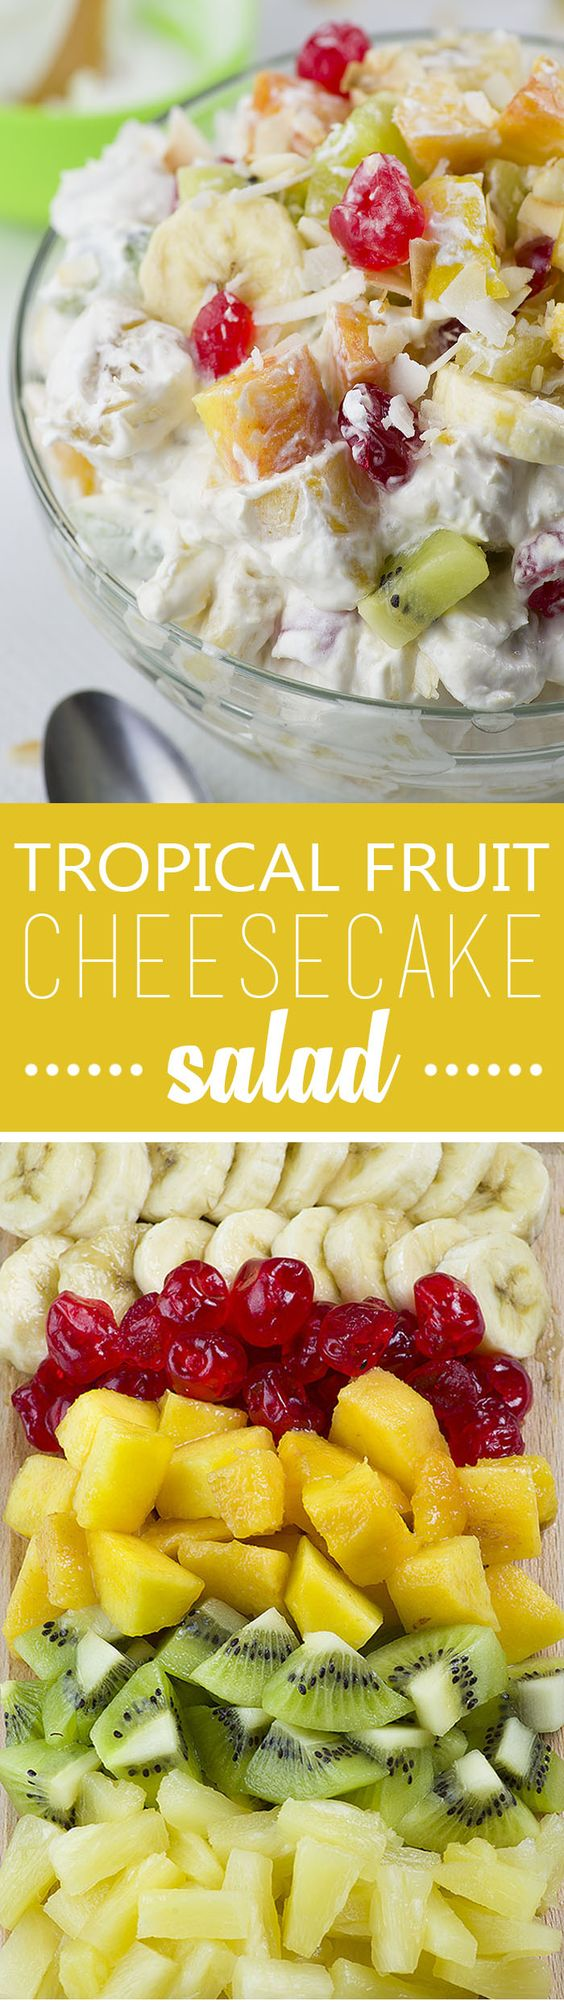 Fruit Salad - Refreshing cheesecake salad with tropical fruit ...